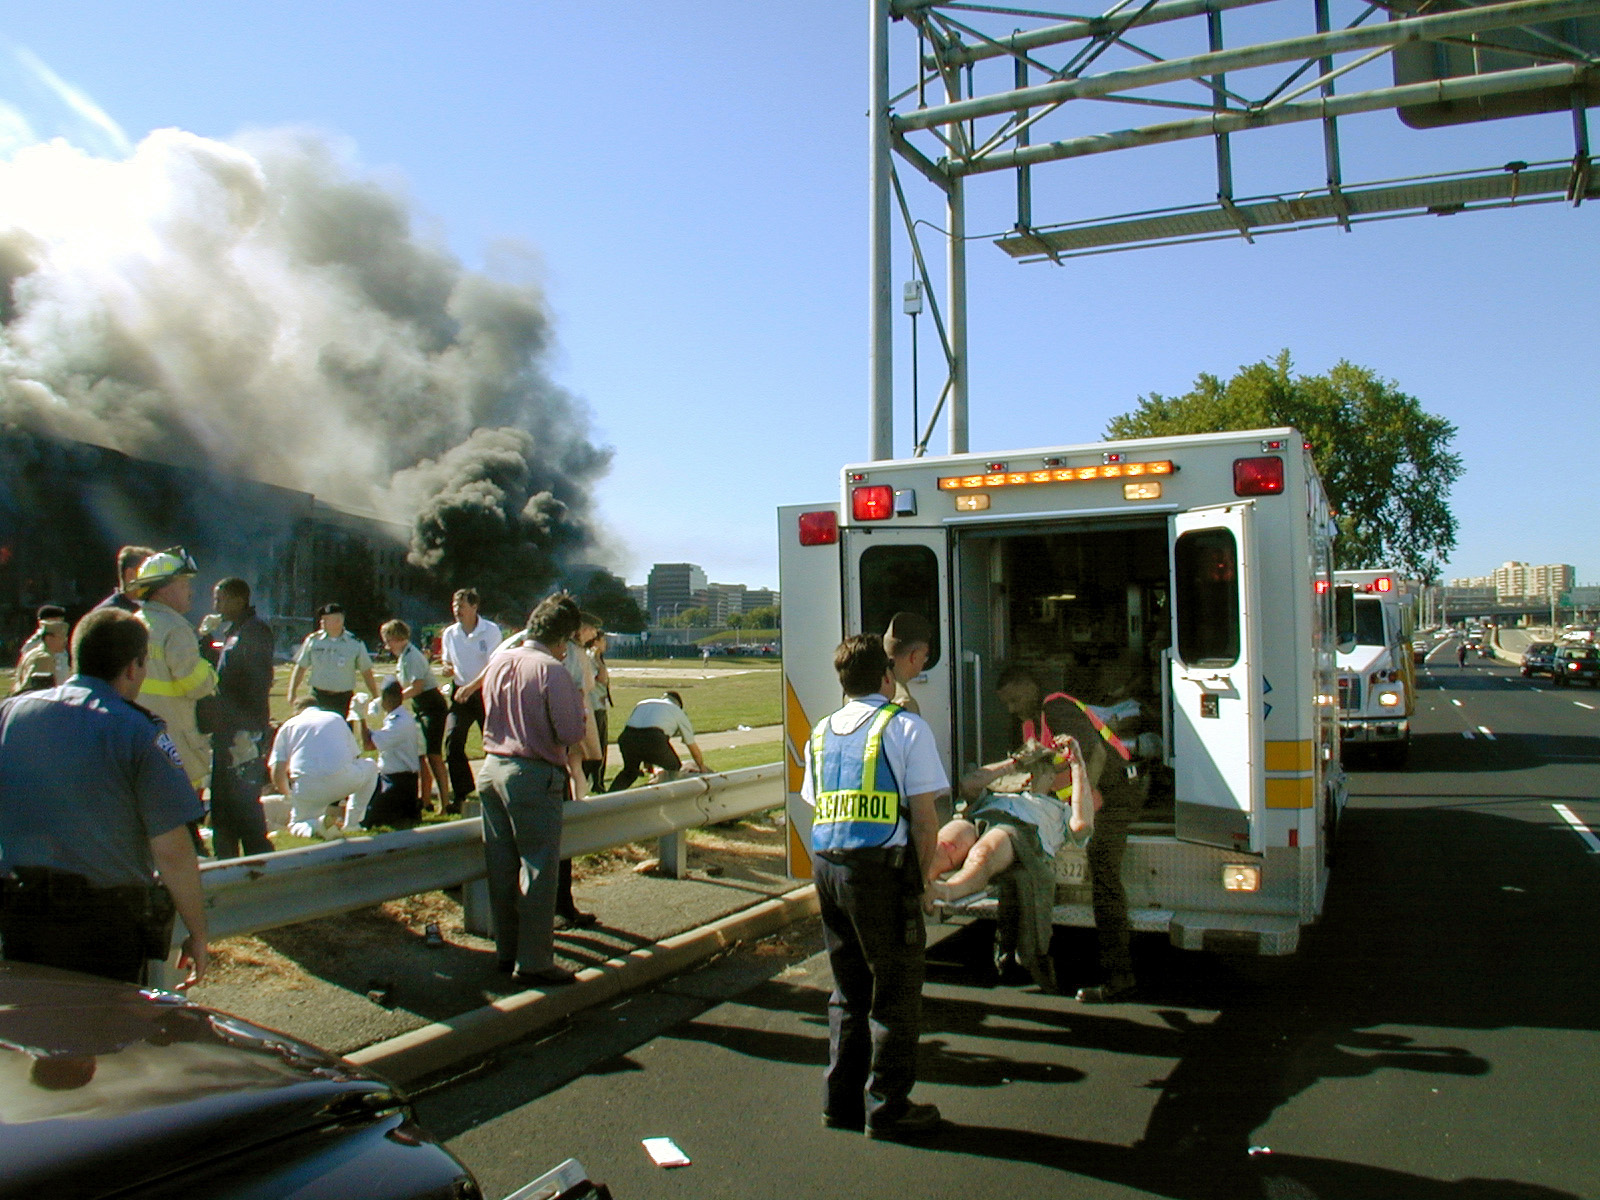 An injured victim is being loaded into a paramedic van with the burning Pentagon in the background